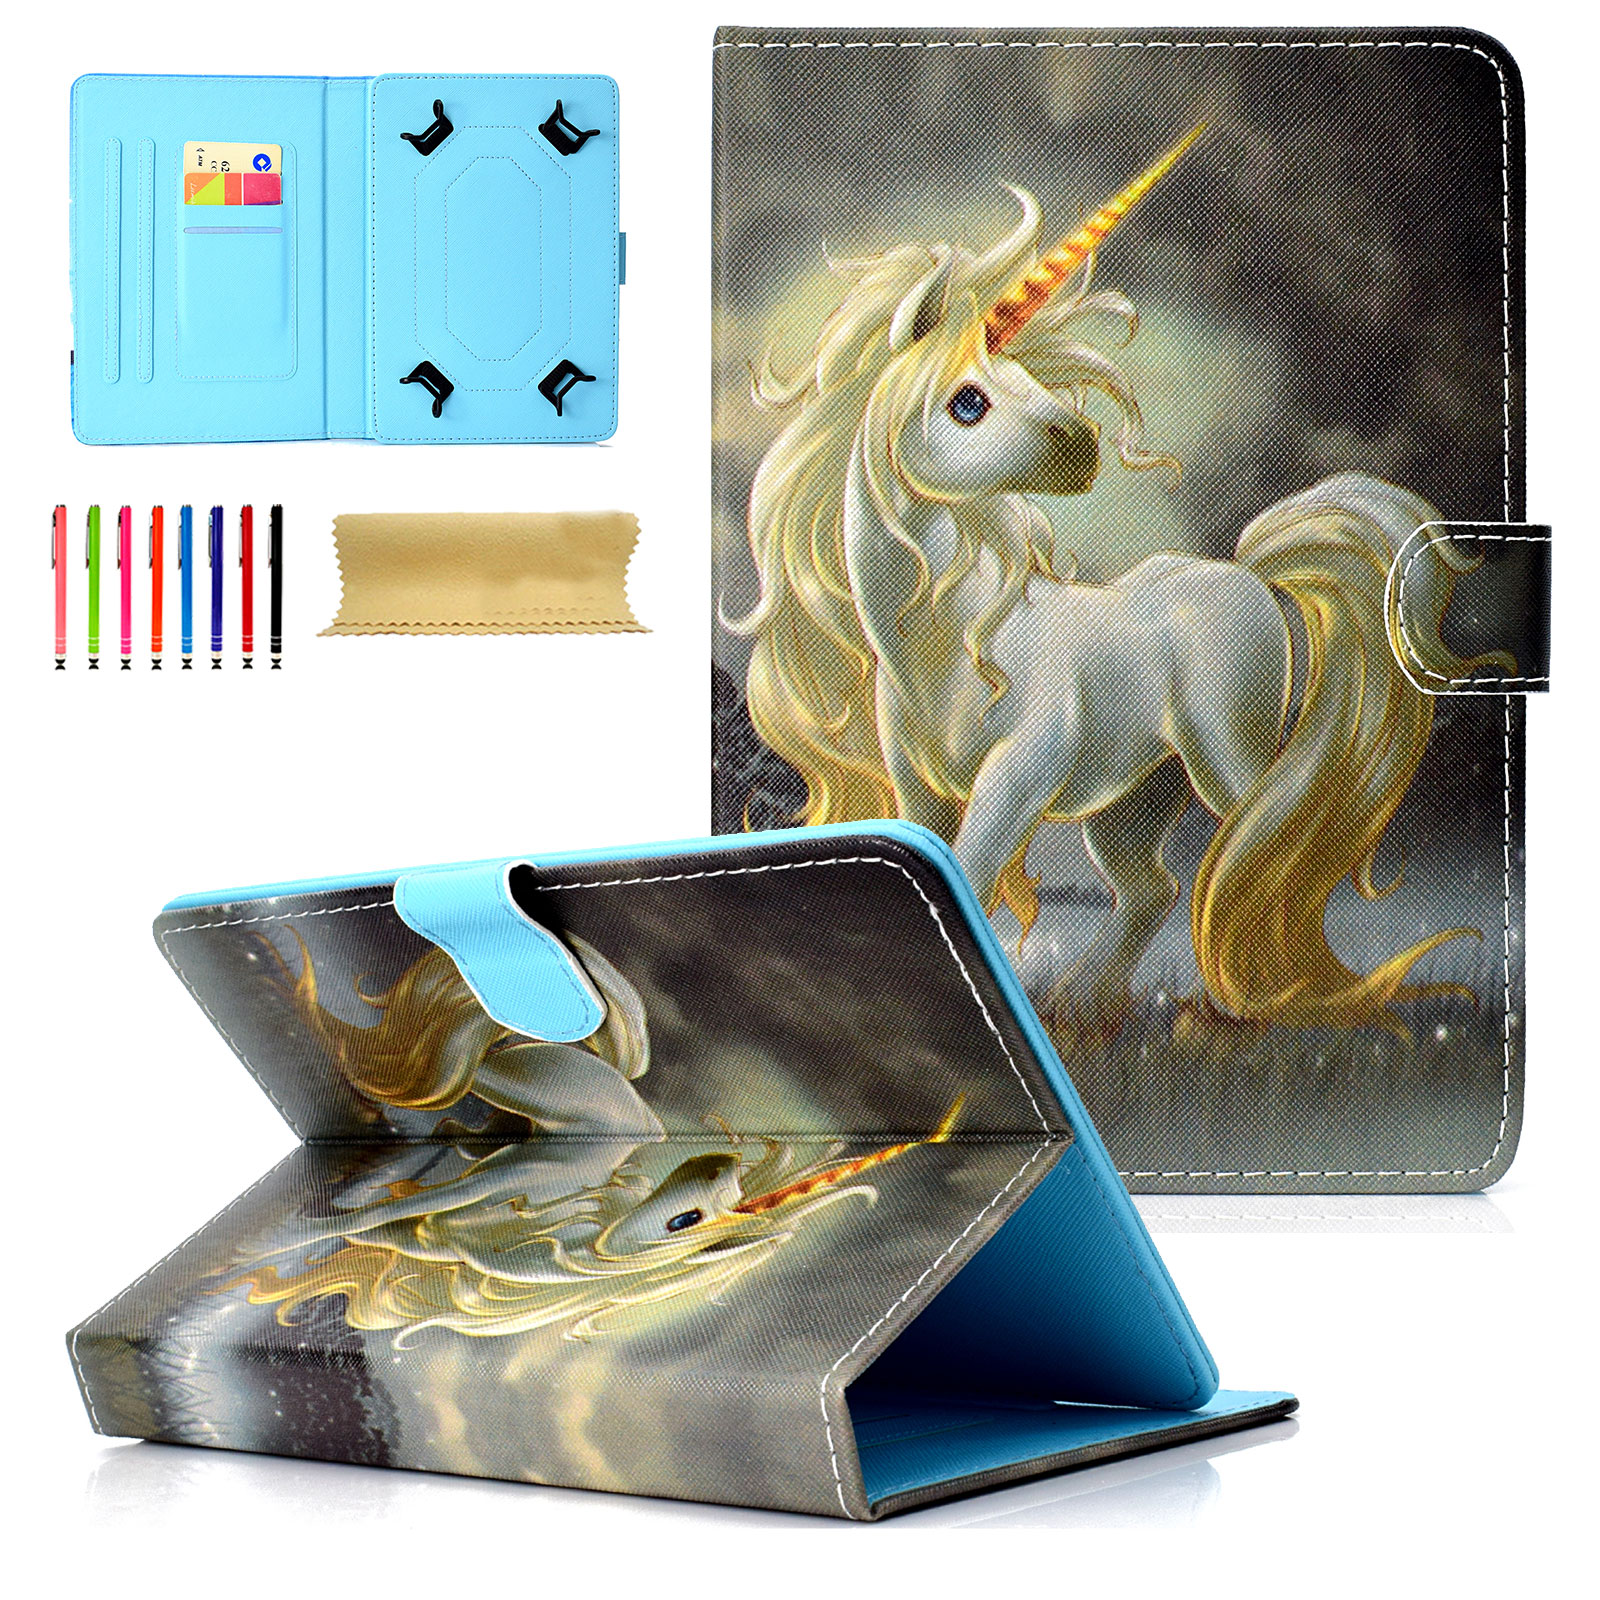 """Goodest Universal 8 Inch Tablet Case, Slim Fit Folio Protective Stand Wallet Cover for 7.5-8.5"""" Tablet 8"""" Touchscreen/iPad Mini/Galaxy Tab A/Fire HD 8/RCA/Chrome Nextbook iView, Unicorn"""